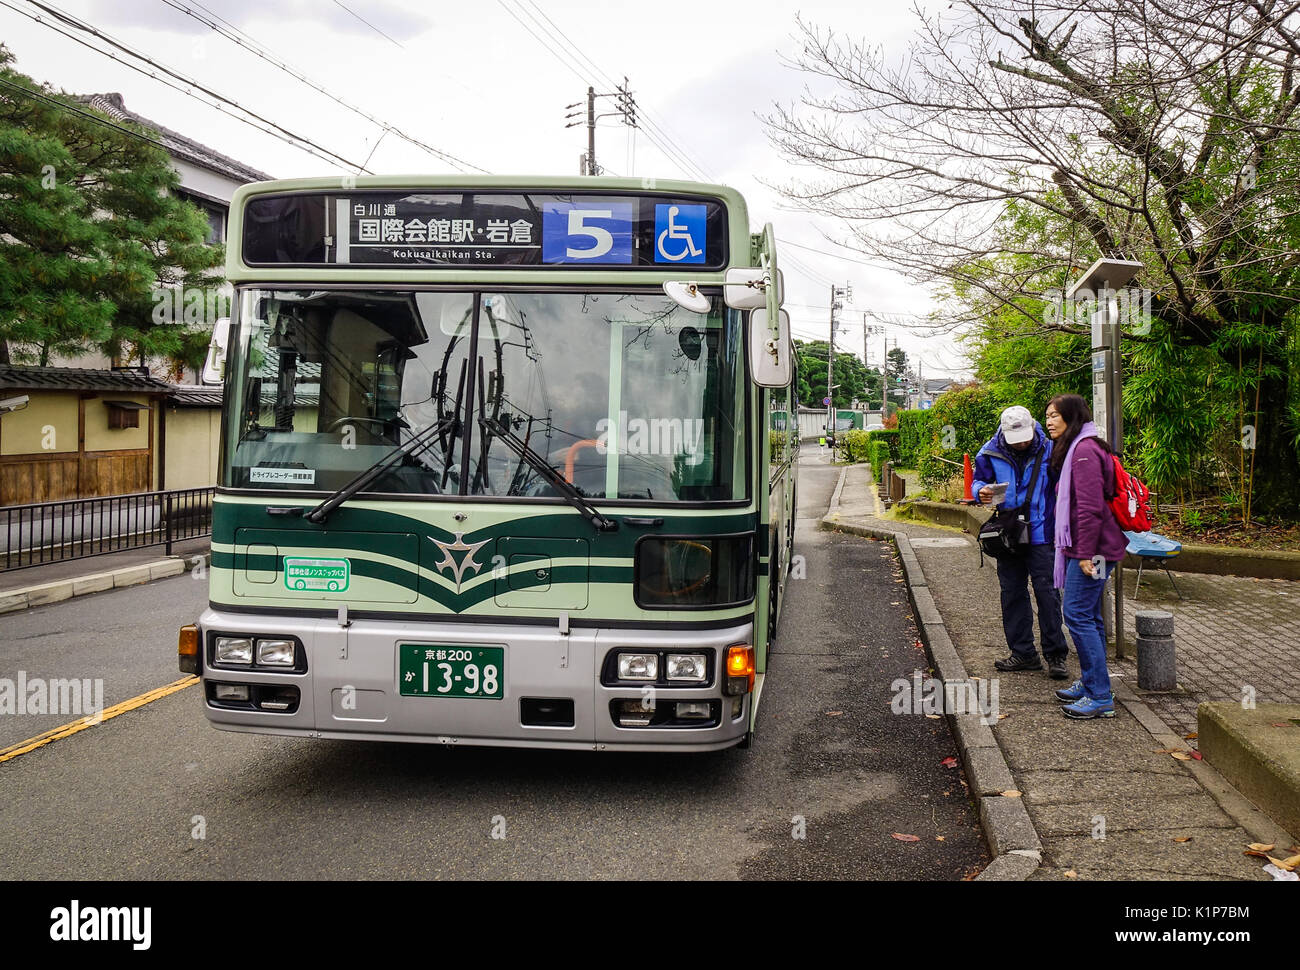 Kyoto, Japan - Nov 28, 2016. A bus stopping at station in Kyoto, Japan. The Kyoto City Buses are major mean of public Stock Photo